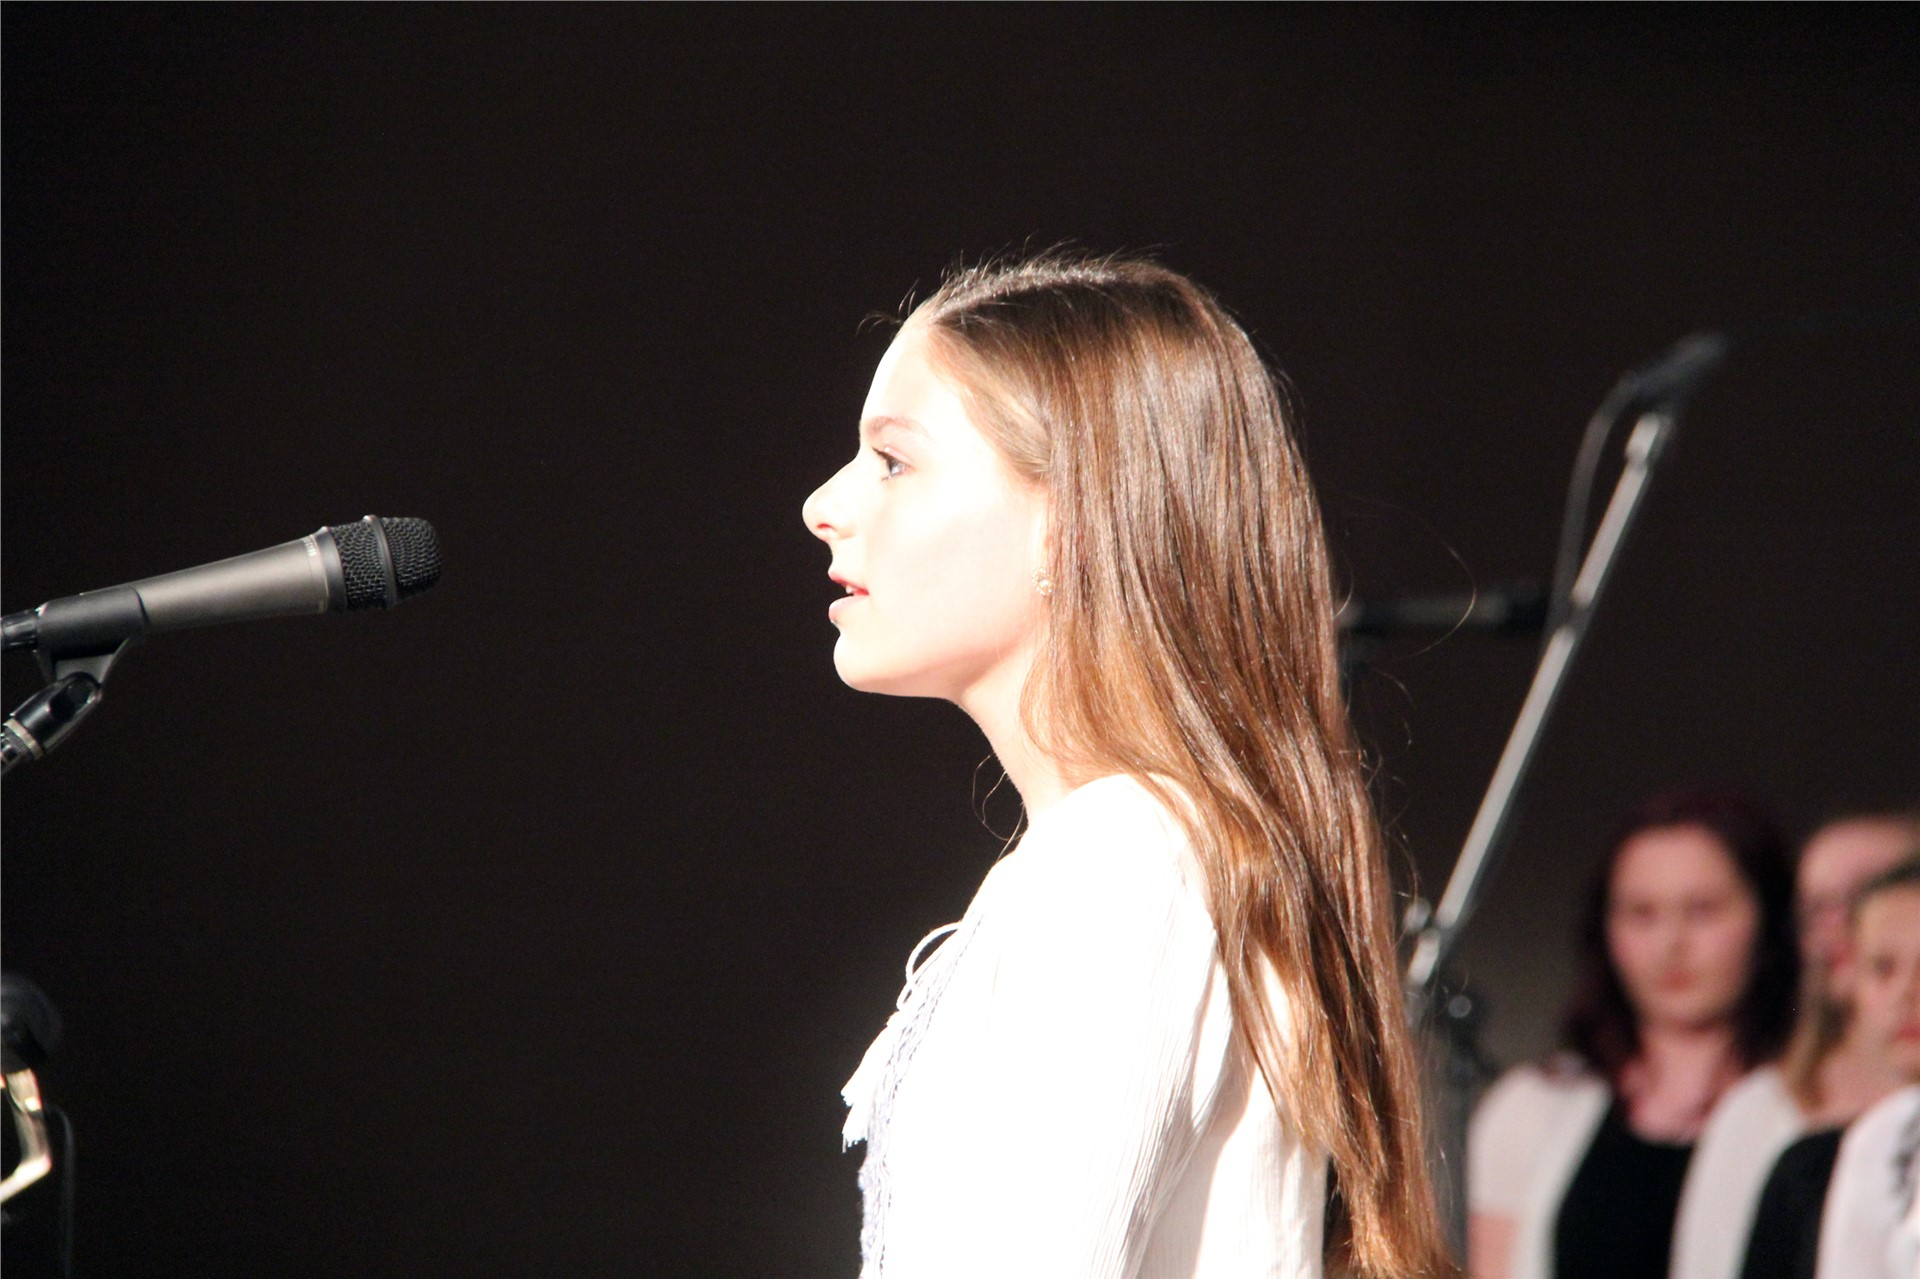 student singing at microphone